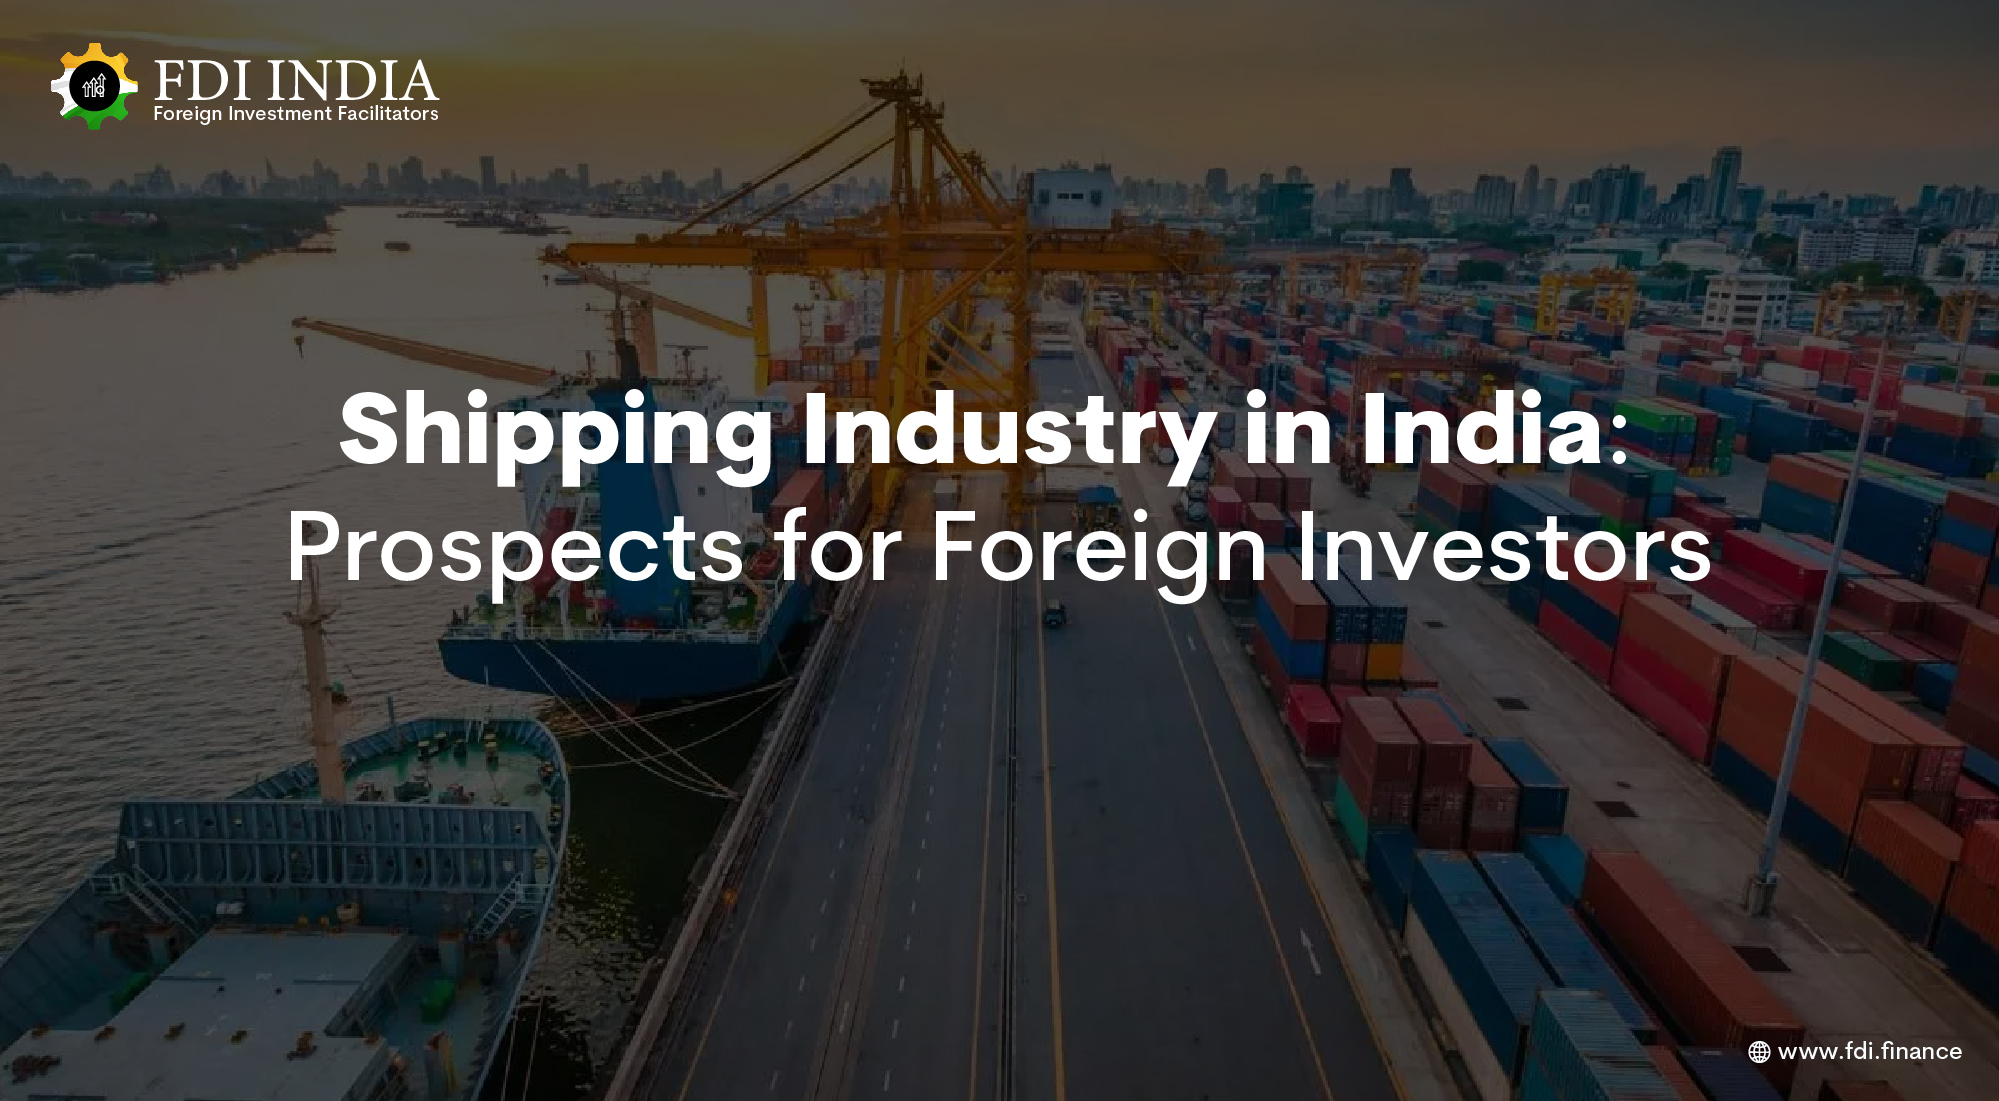 Shipping Industry in India: Prospects for Foreign Investors